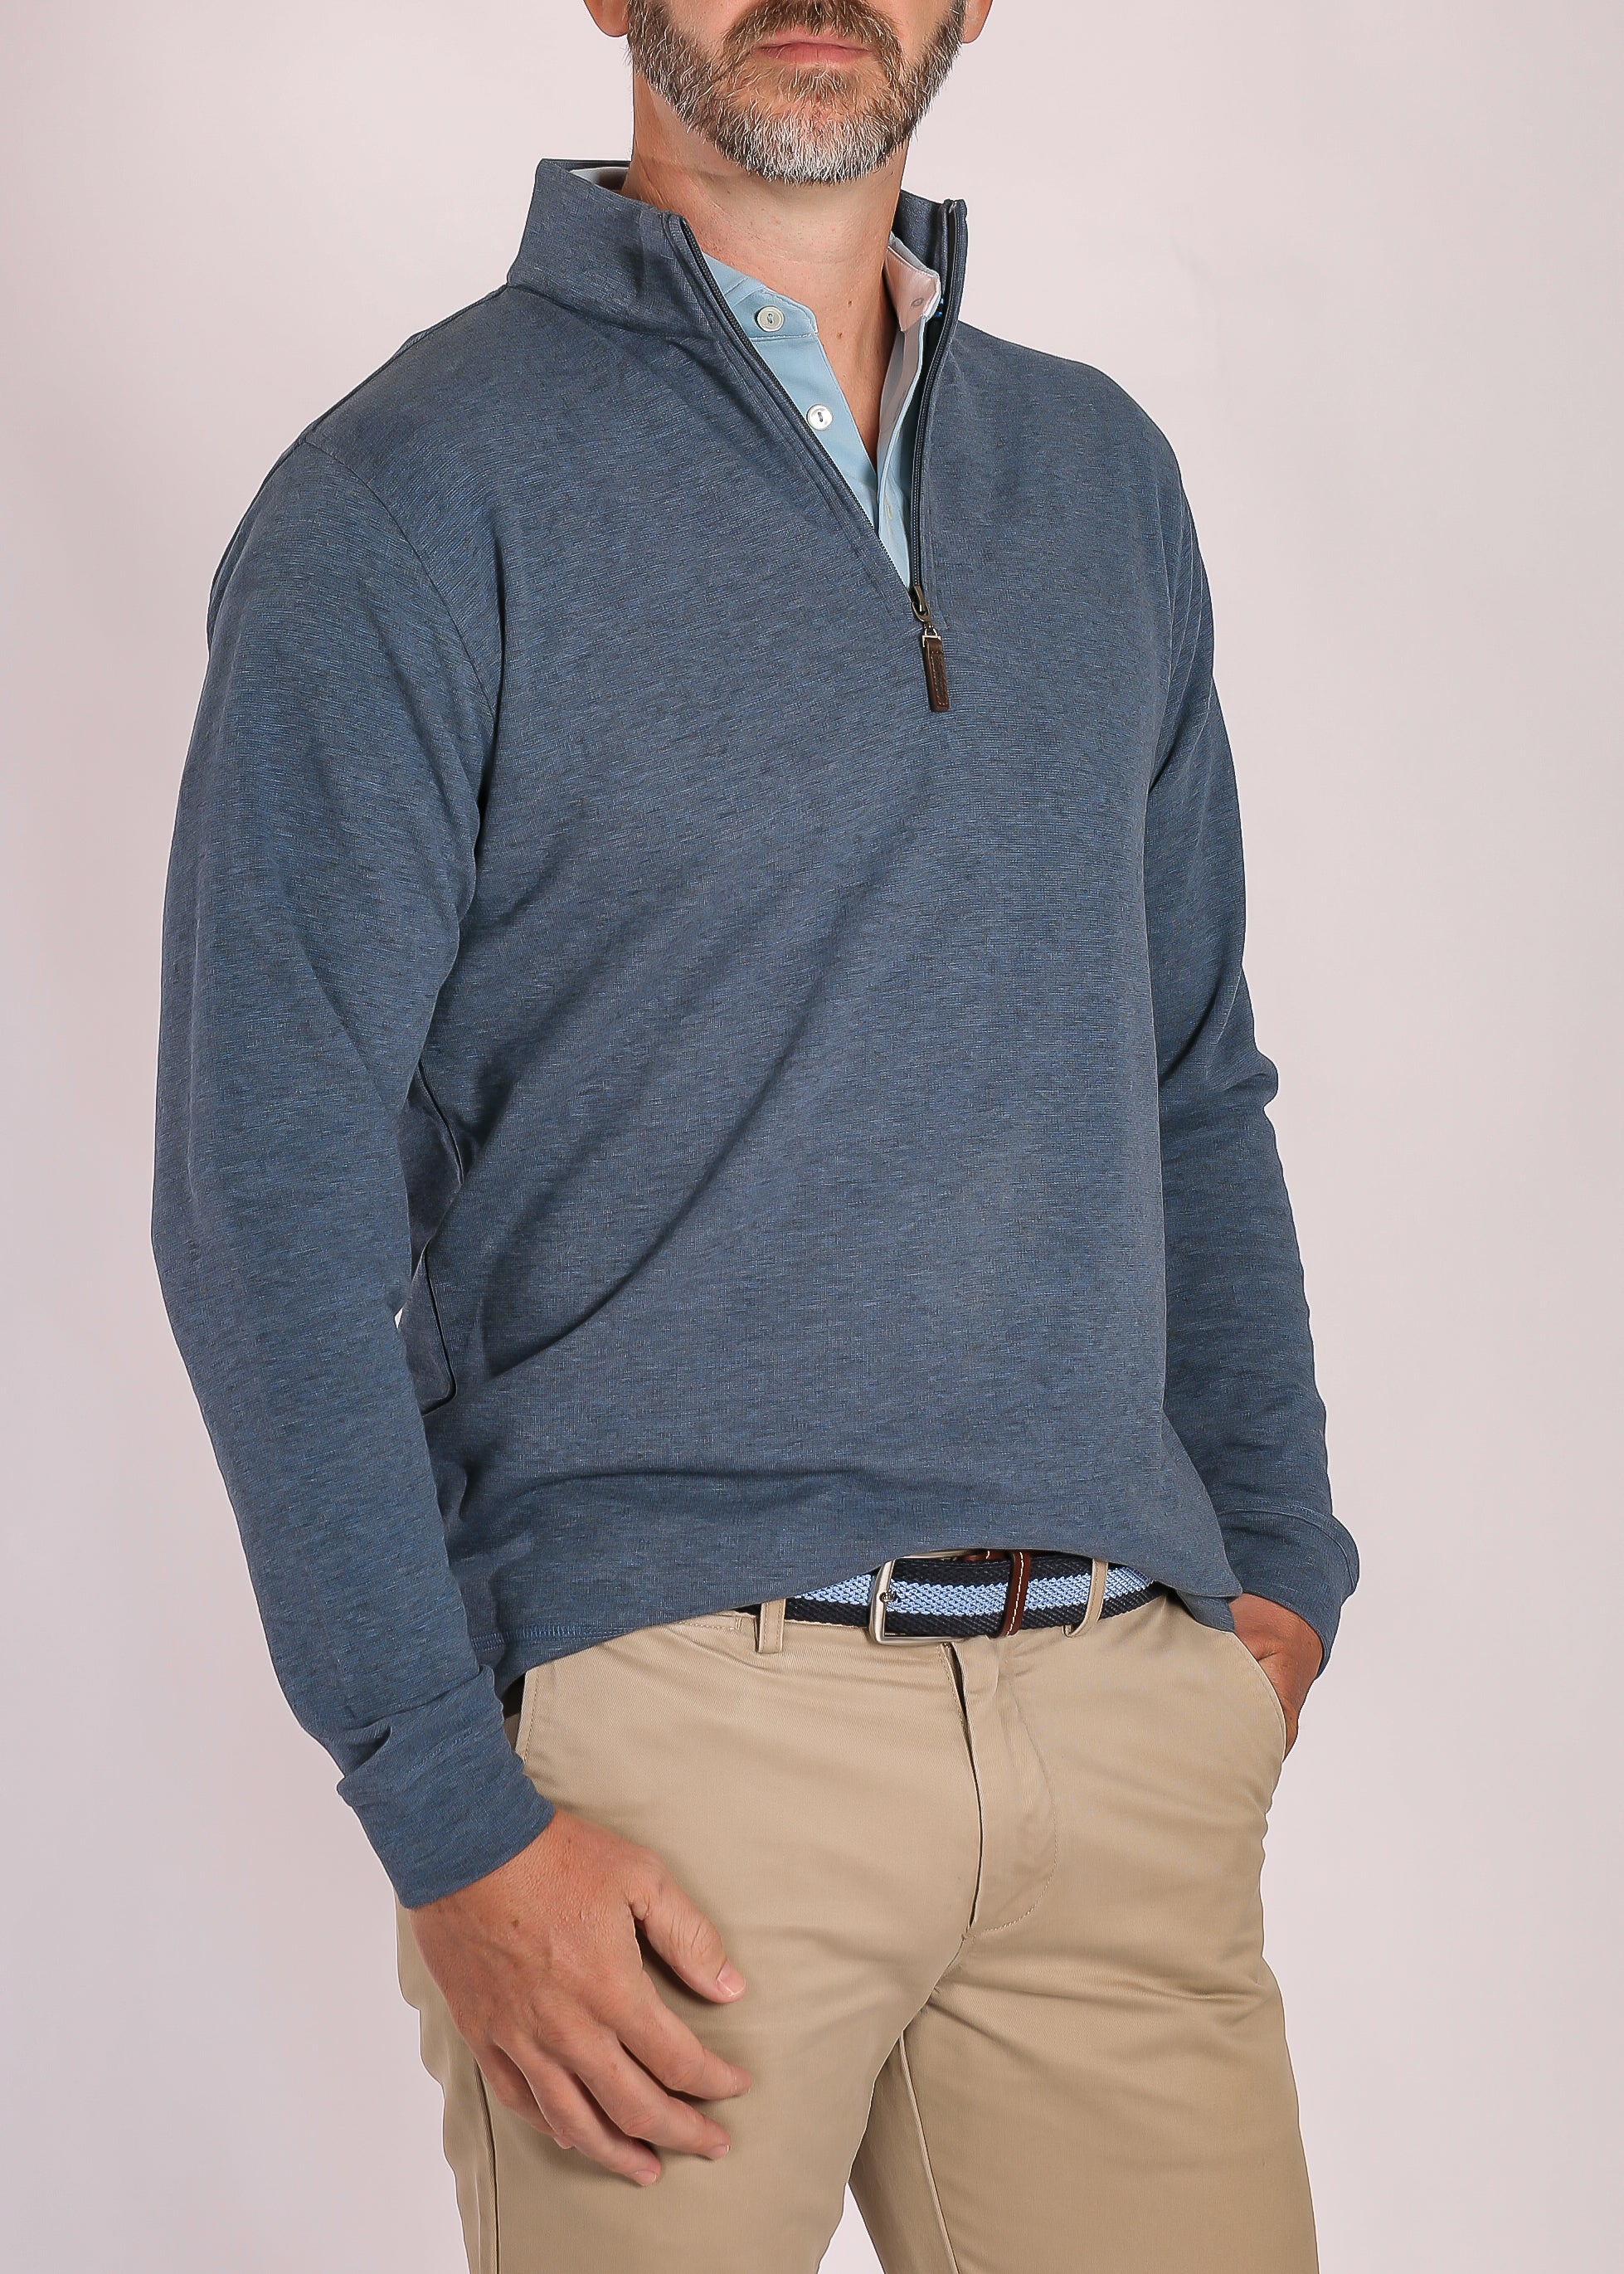 Morgan Interlock Quarter Zip - Navy